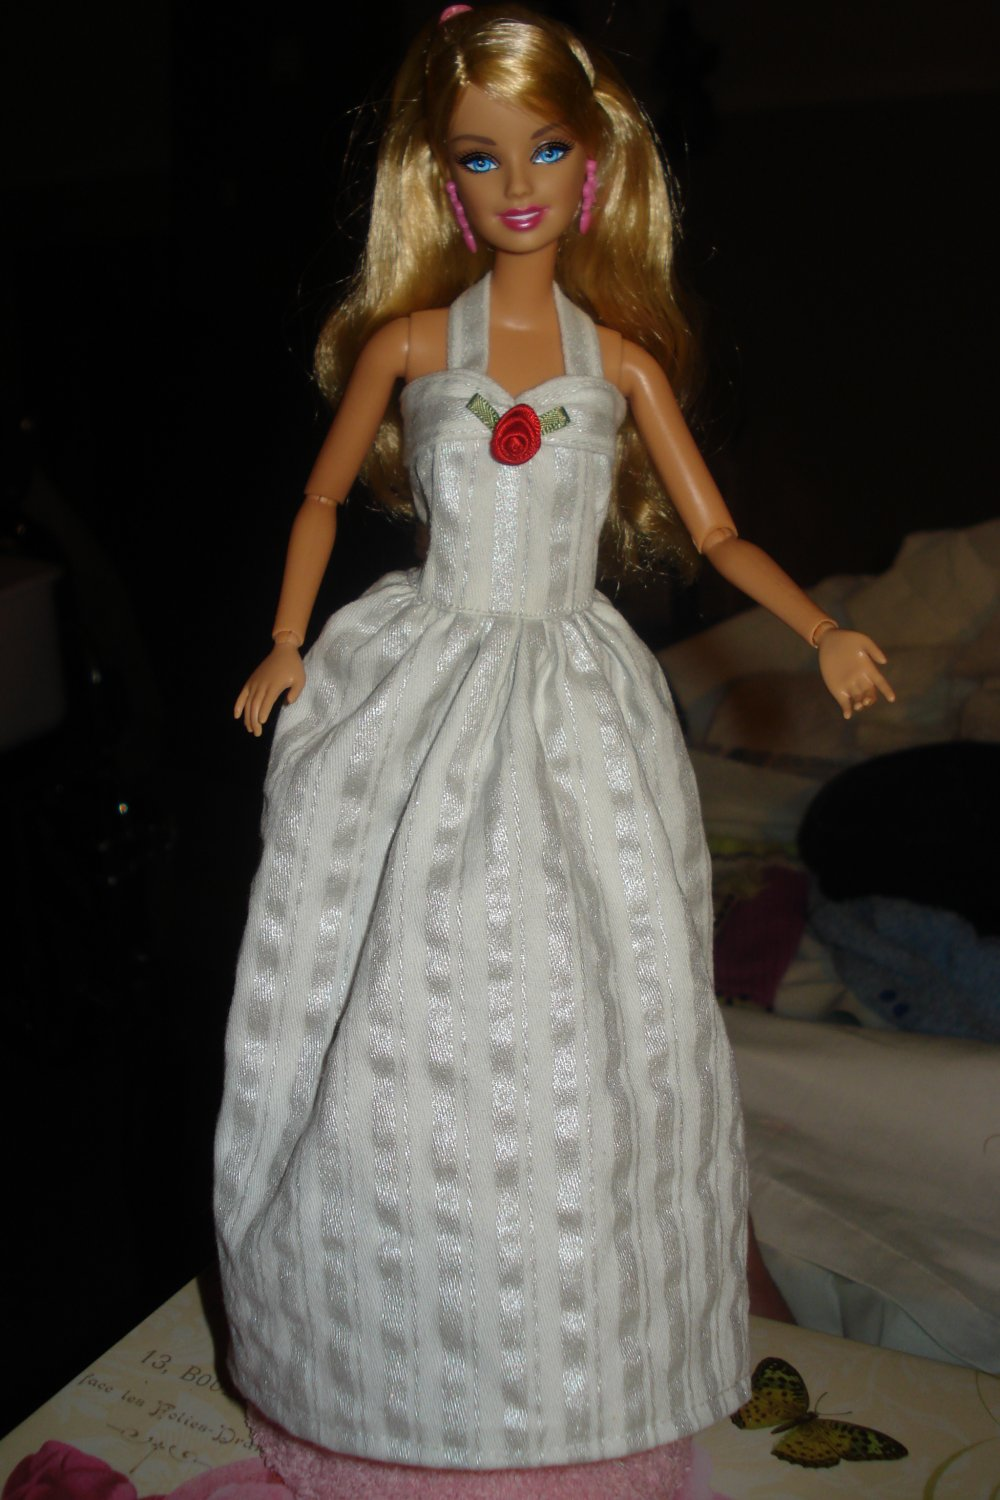 Metalic silver and white striped formal dress for Barbie Dolls - ed05